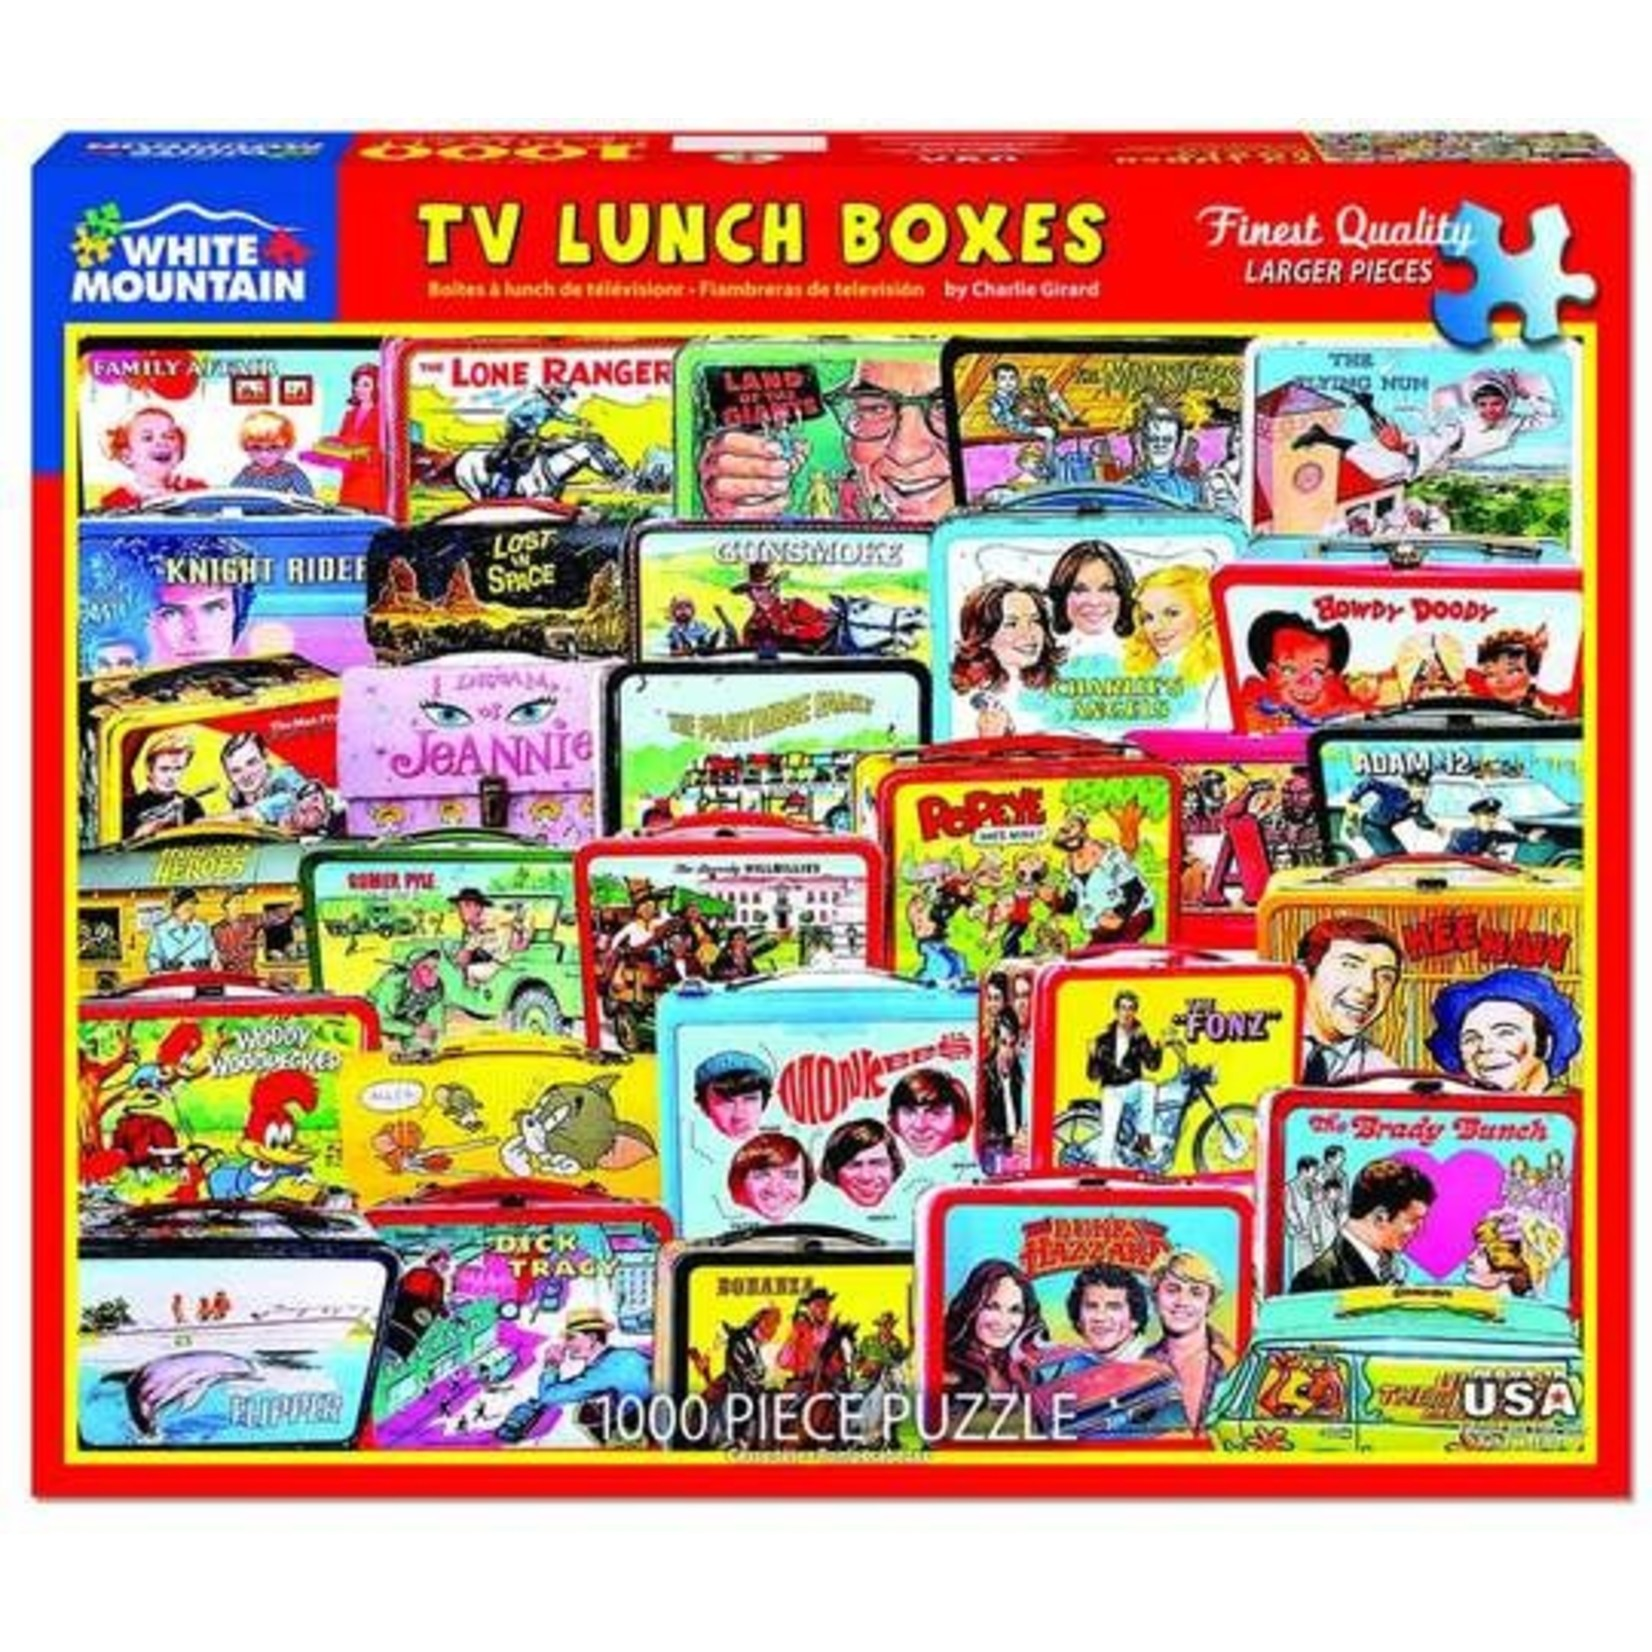 TV LUNCH BOXES PUZZLE